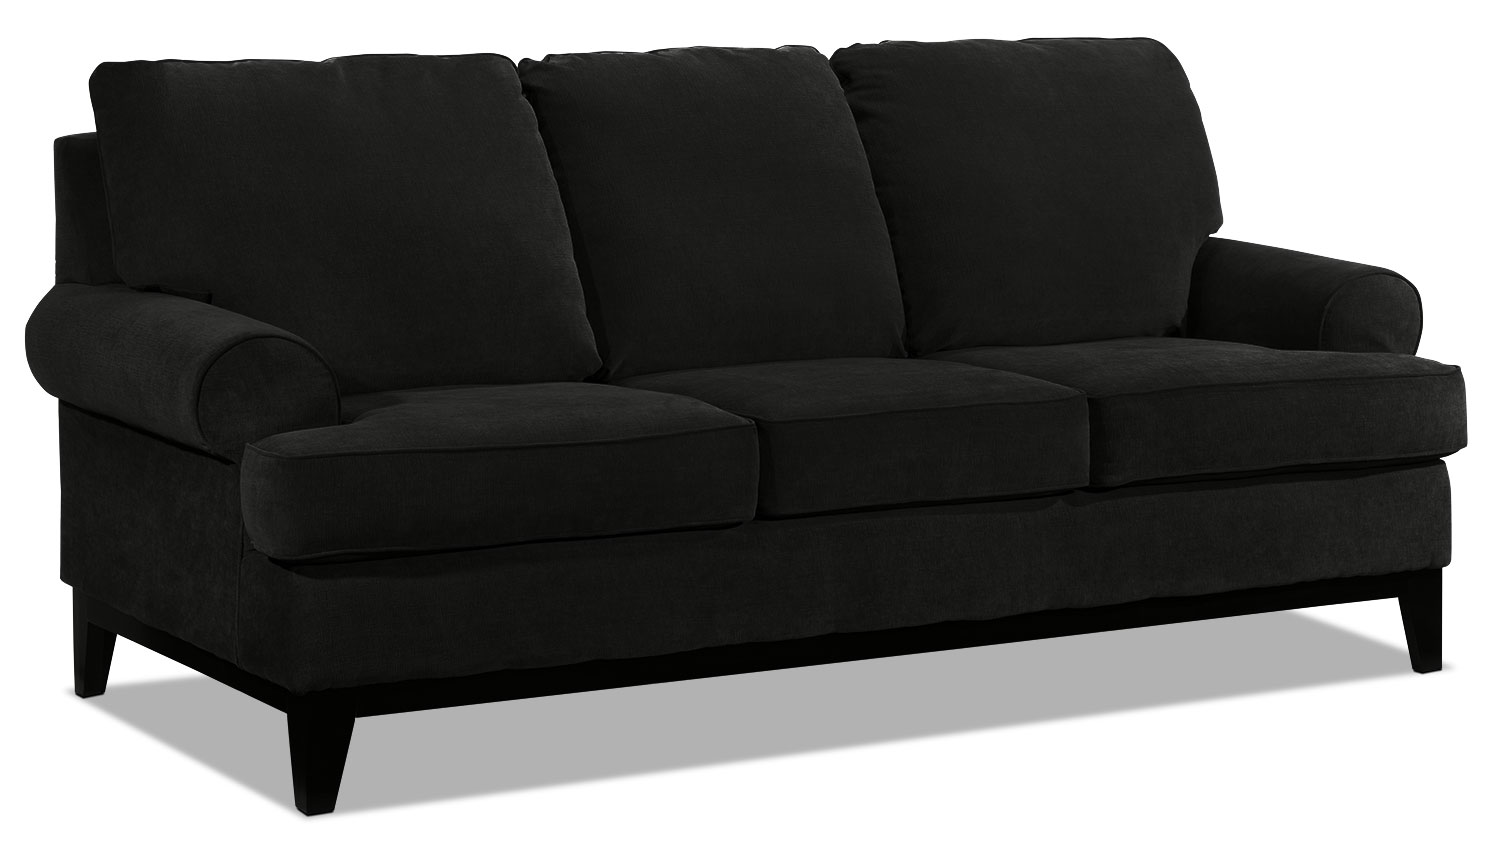 crizia sofa black